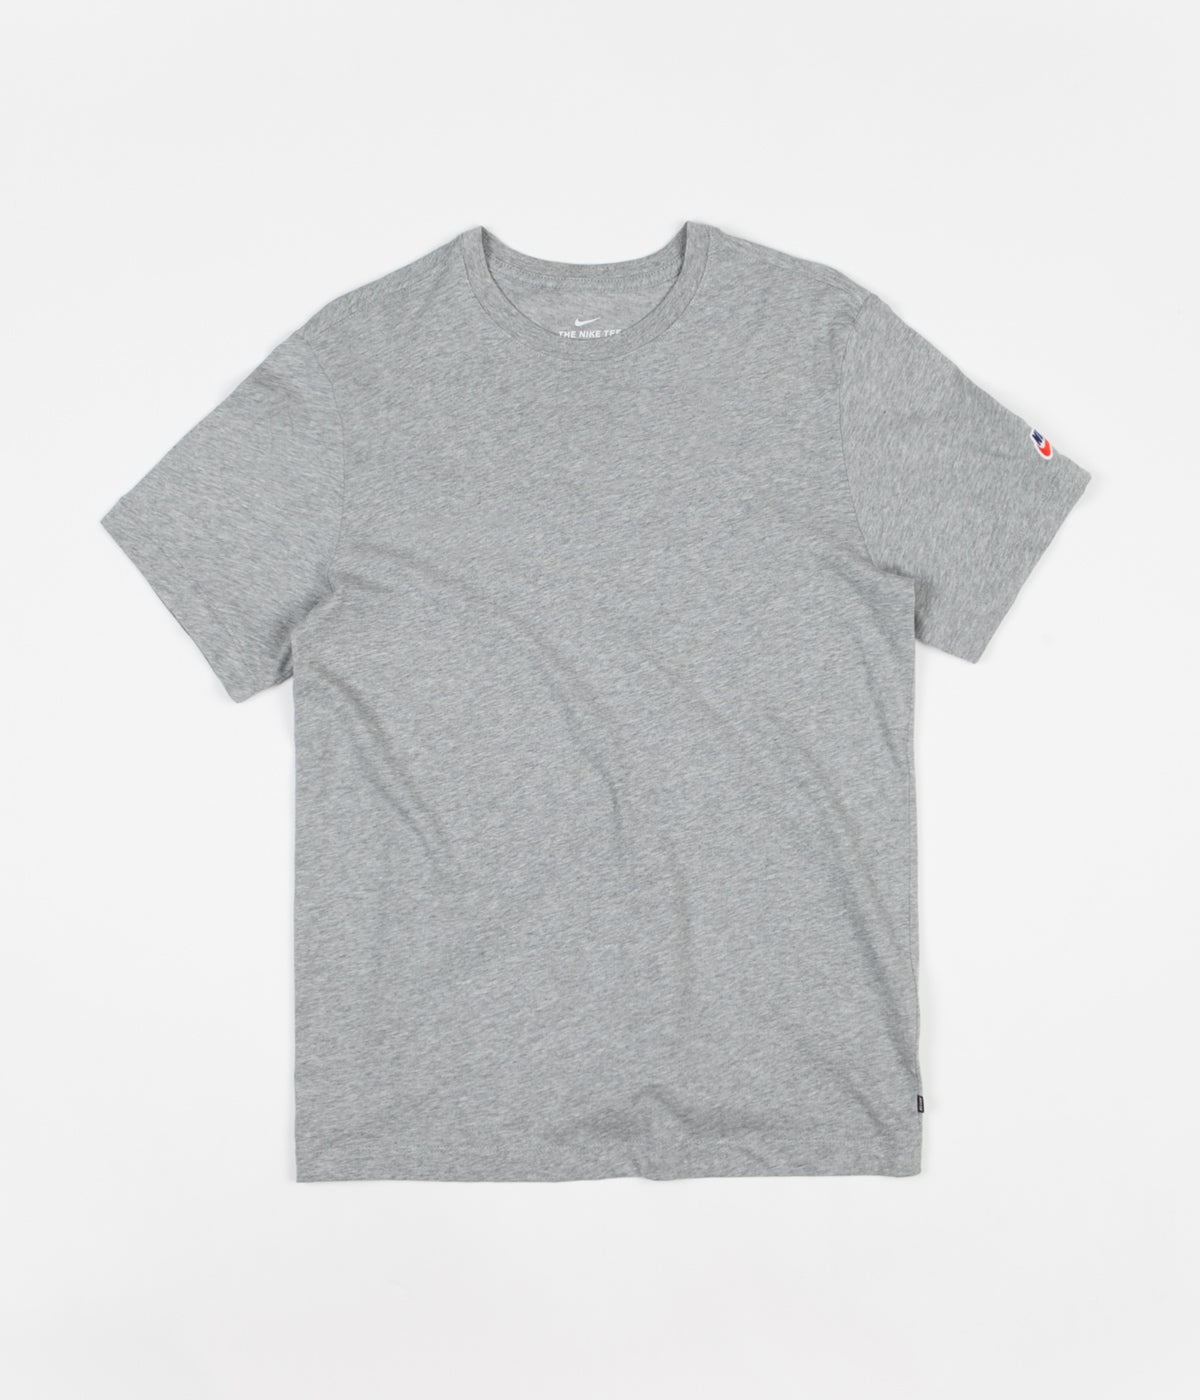 9a371ede Nike SB Essentials T-Shirt - Dark Grey Heather | Flatspot